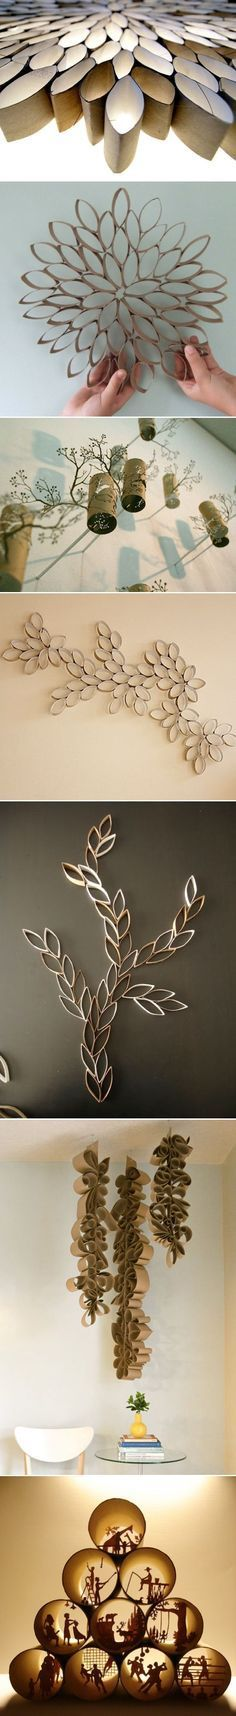 DIY Paper Roll Crafts